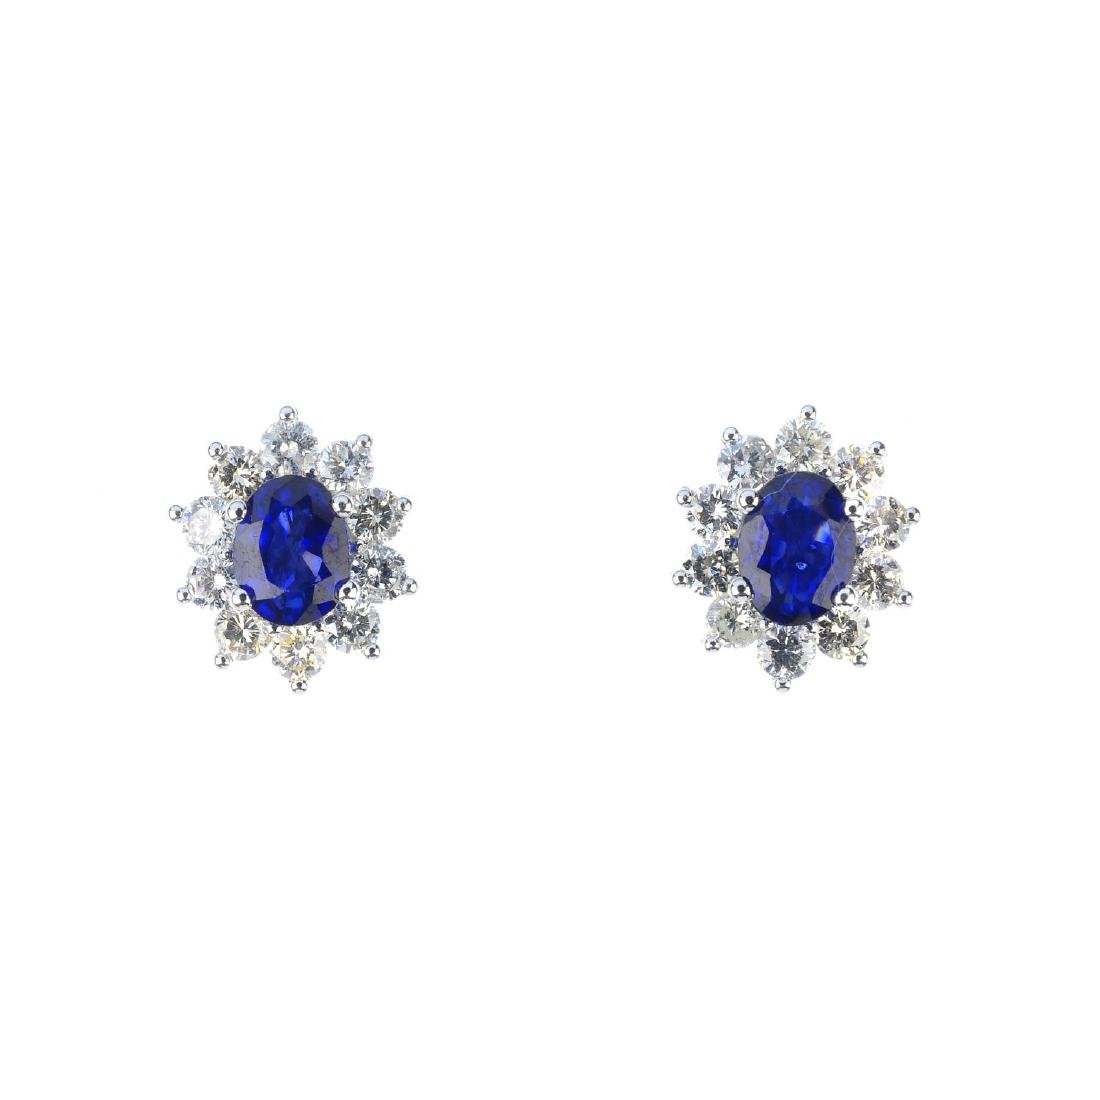 A pair of sapphire and diamond cluster earrings. Each